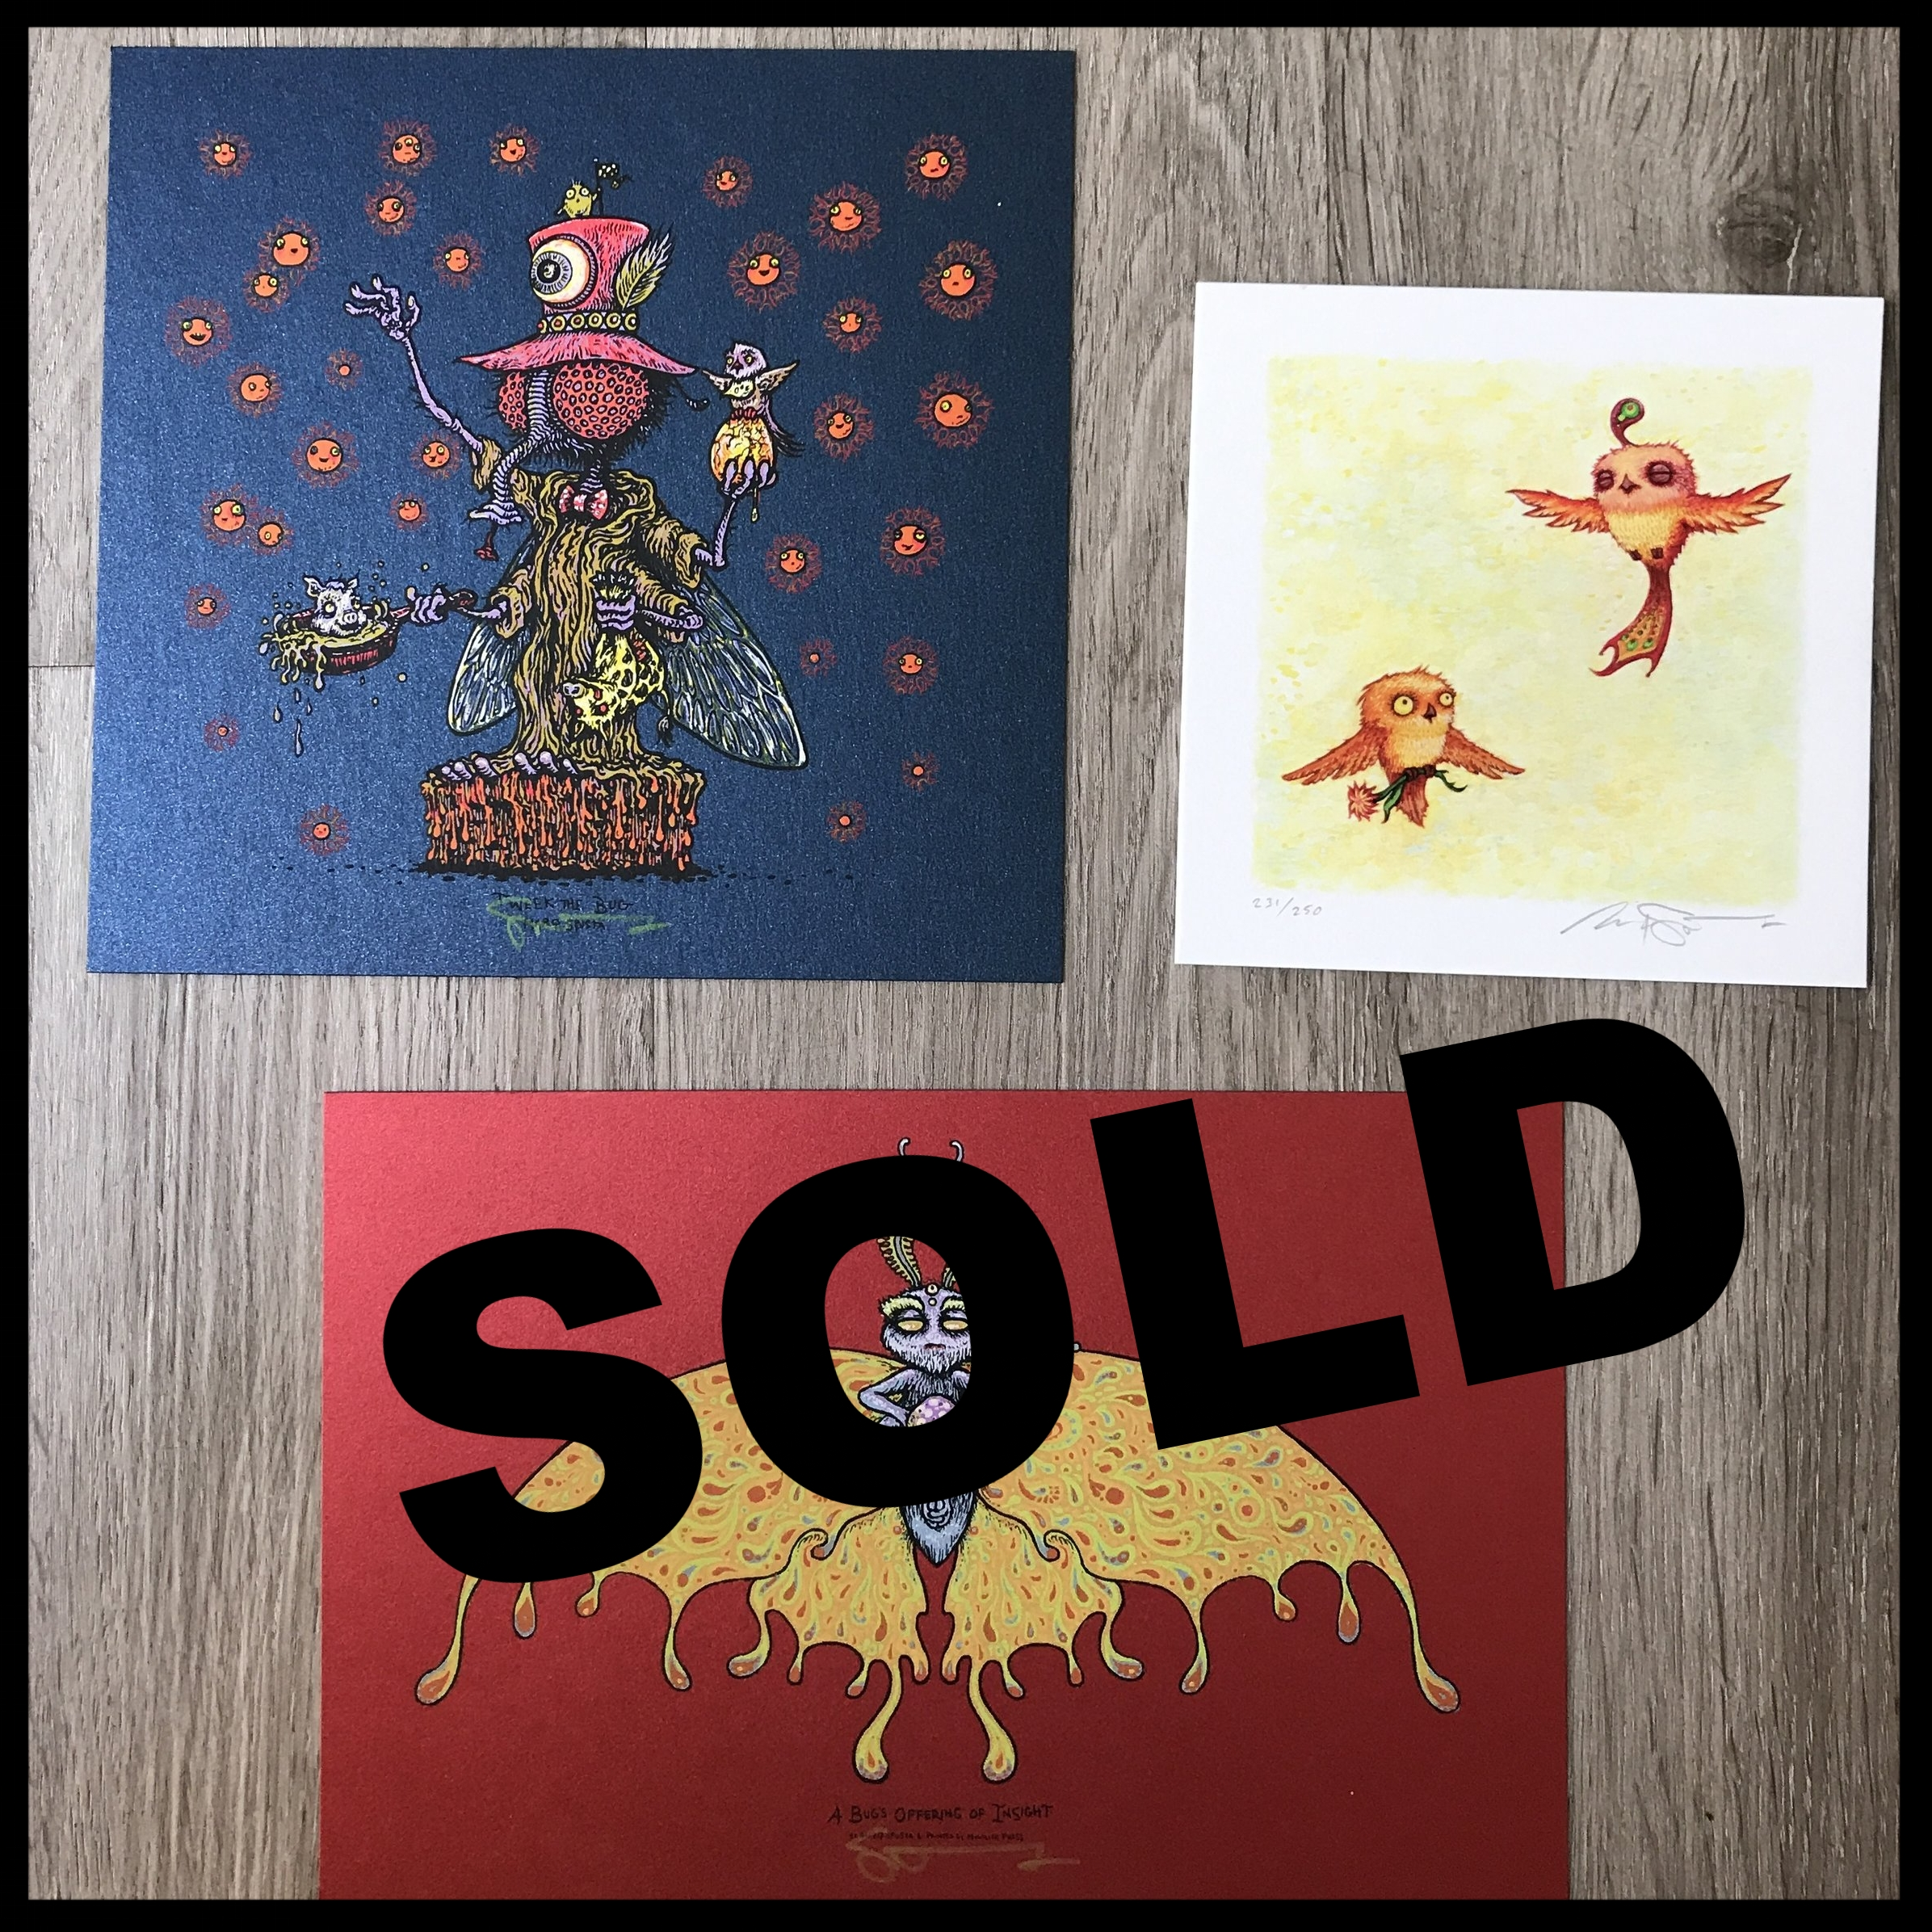 "$200 - PACK E - Tweek the Bug 7"" x 7"" + Happy Pleasant Flight Giclee 5"" x 5"" + A Bug's Offering of Insight 6"" x 9"""